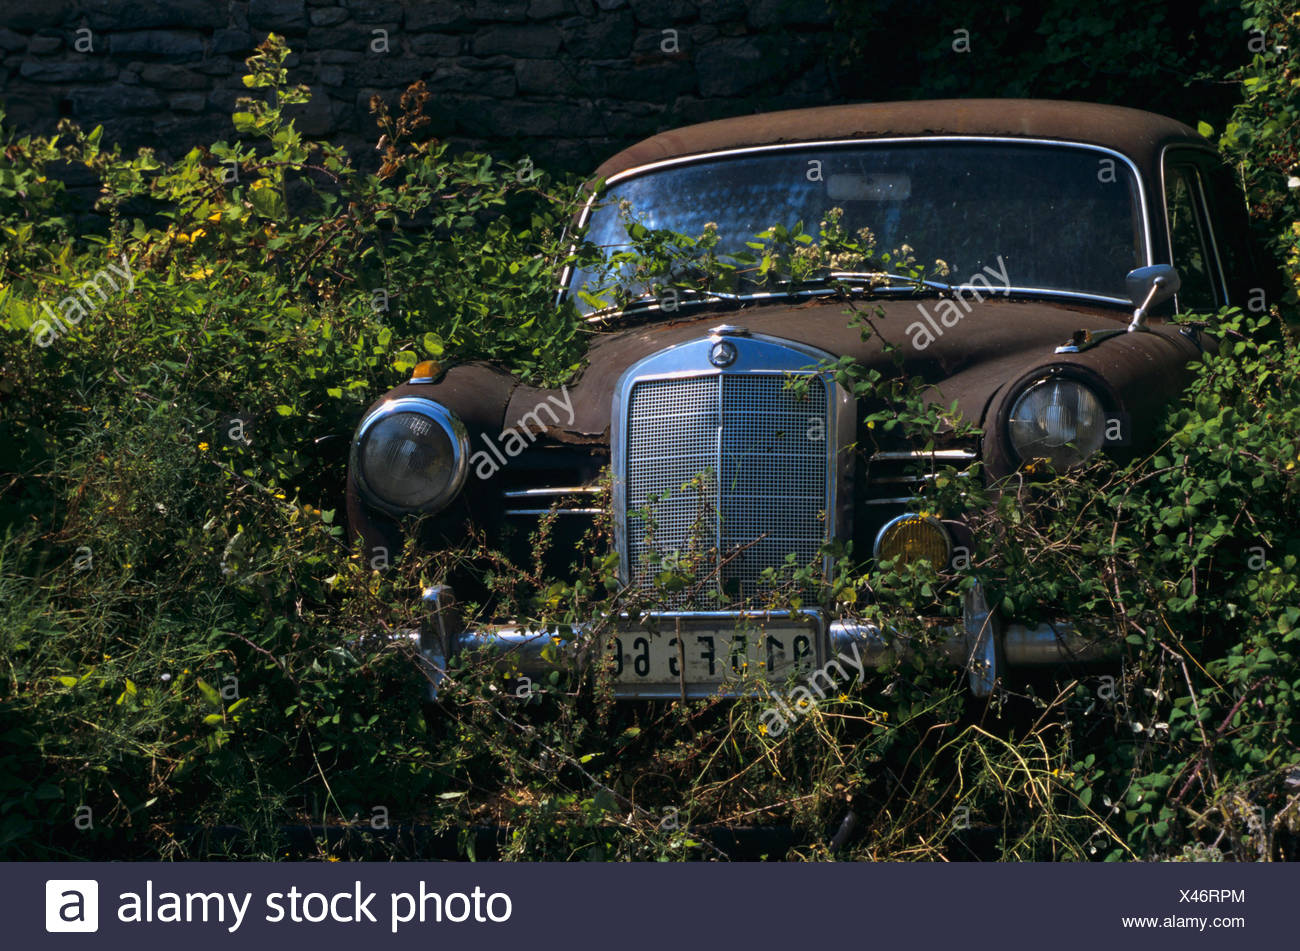 Clapped Out Stock Photos Images Alamy Antique Car Fuse Box Old Amongst Bushes Image